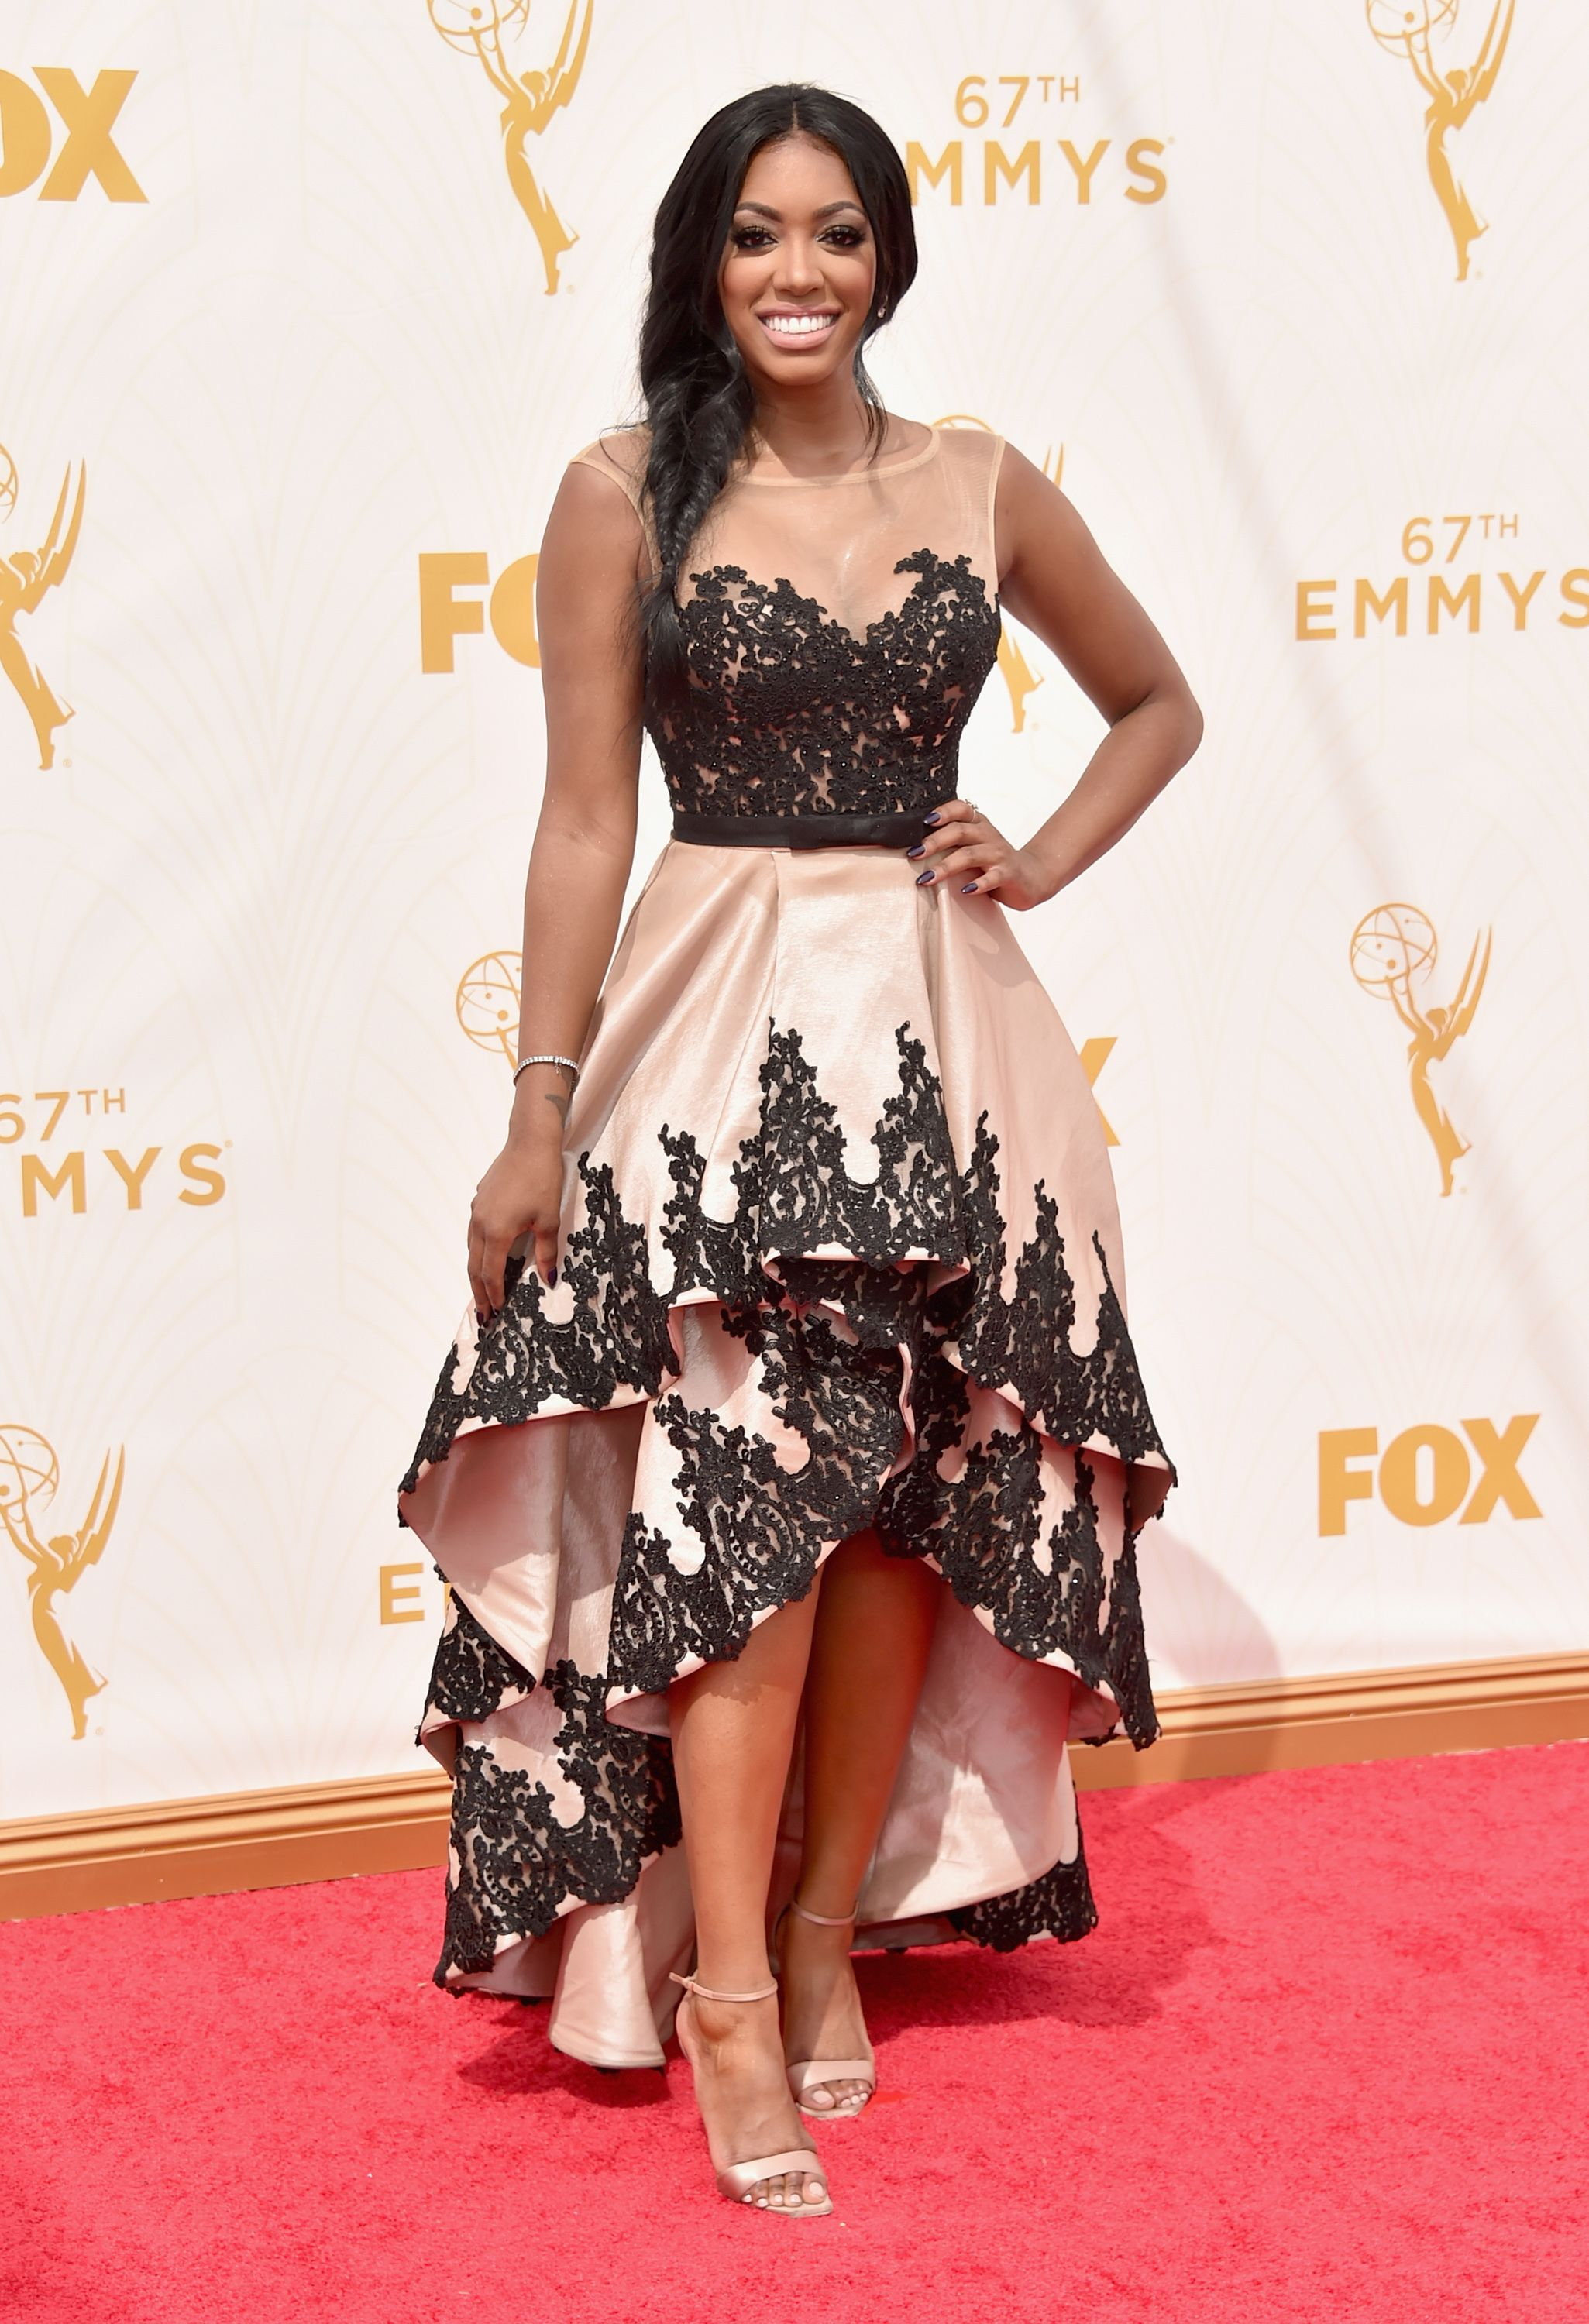 Porsha Williams at the 67th Emmy Awards at Microsoft Theater on September 20, 2015 in Los Angeles, California.   Source: Getty Images